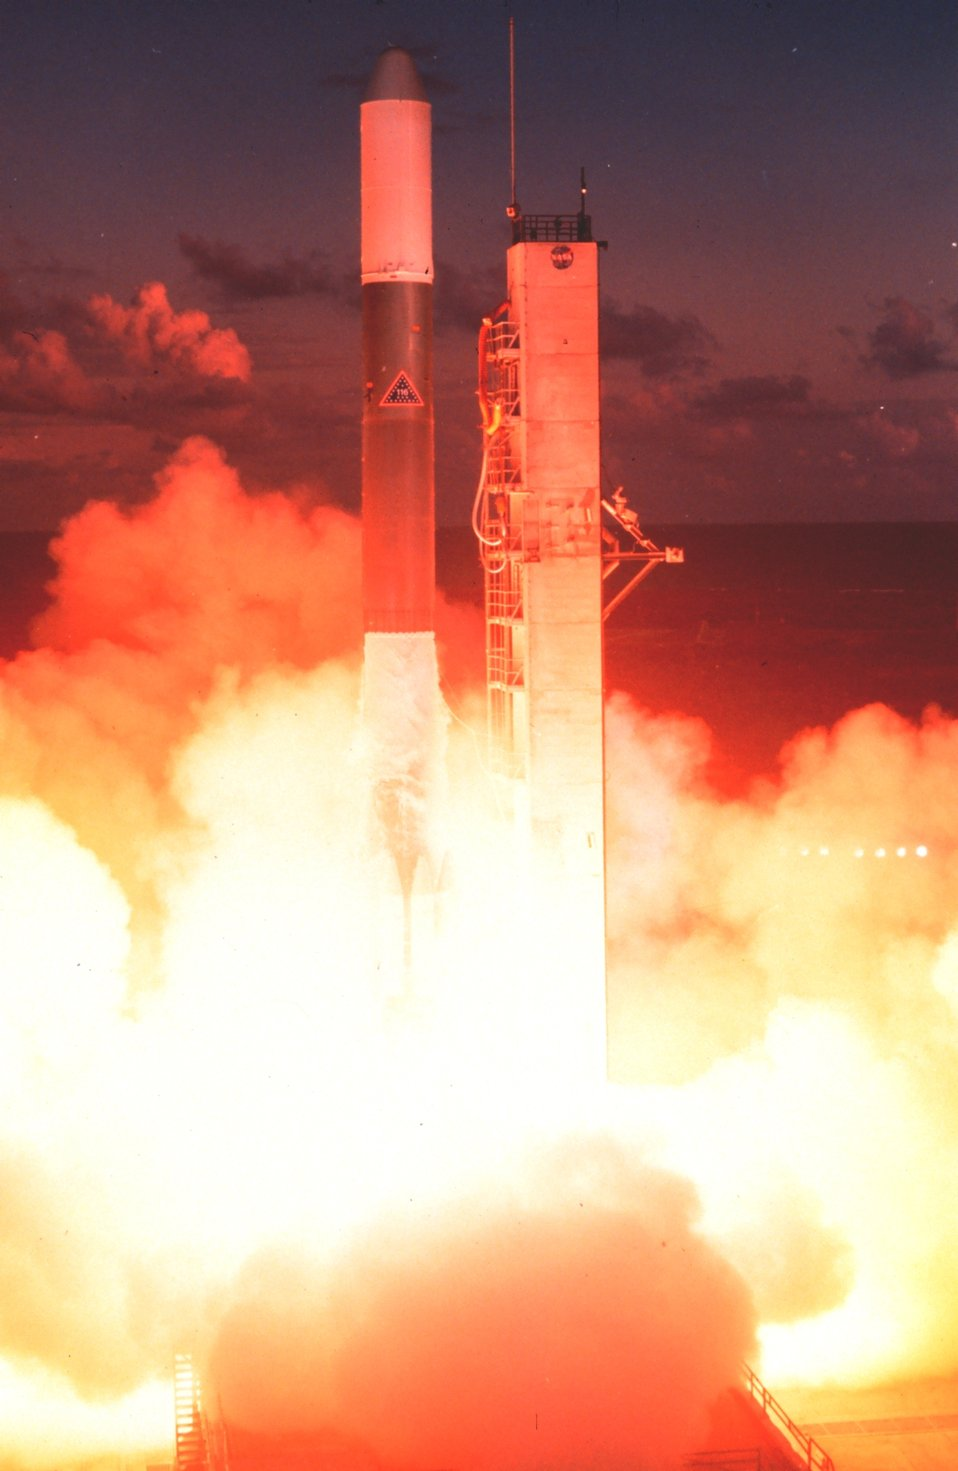 The launch of GOES-A, designated GOES 1 upon becoming operational.